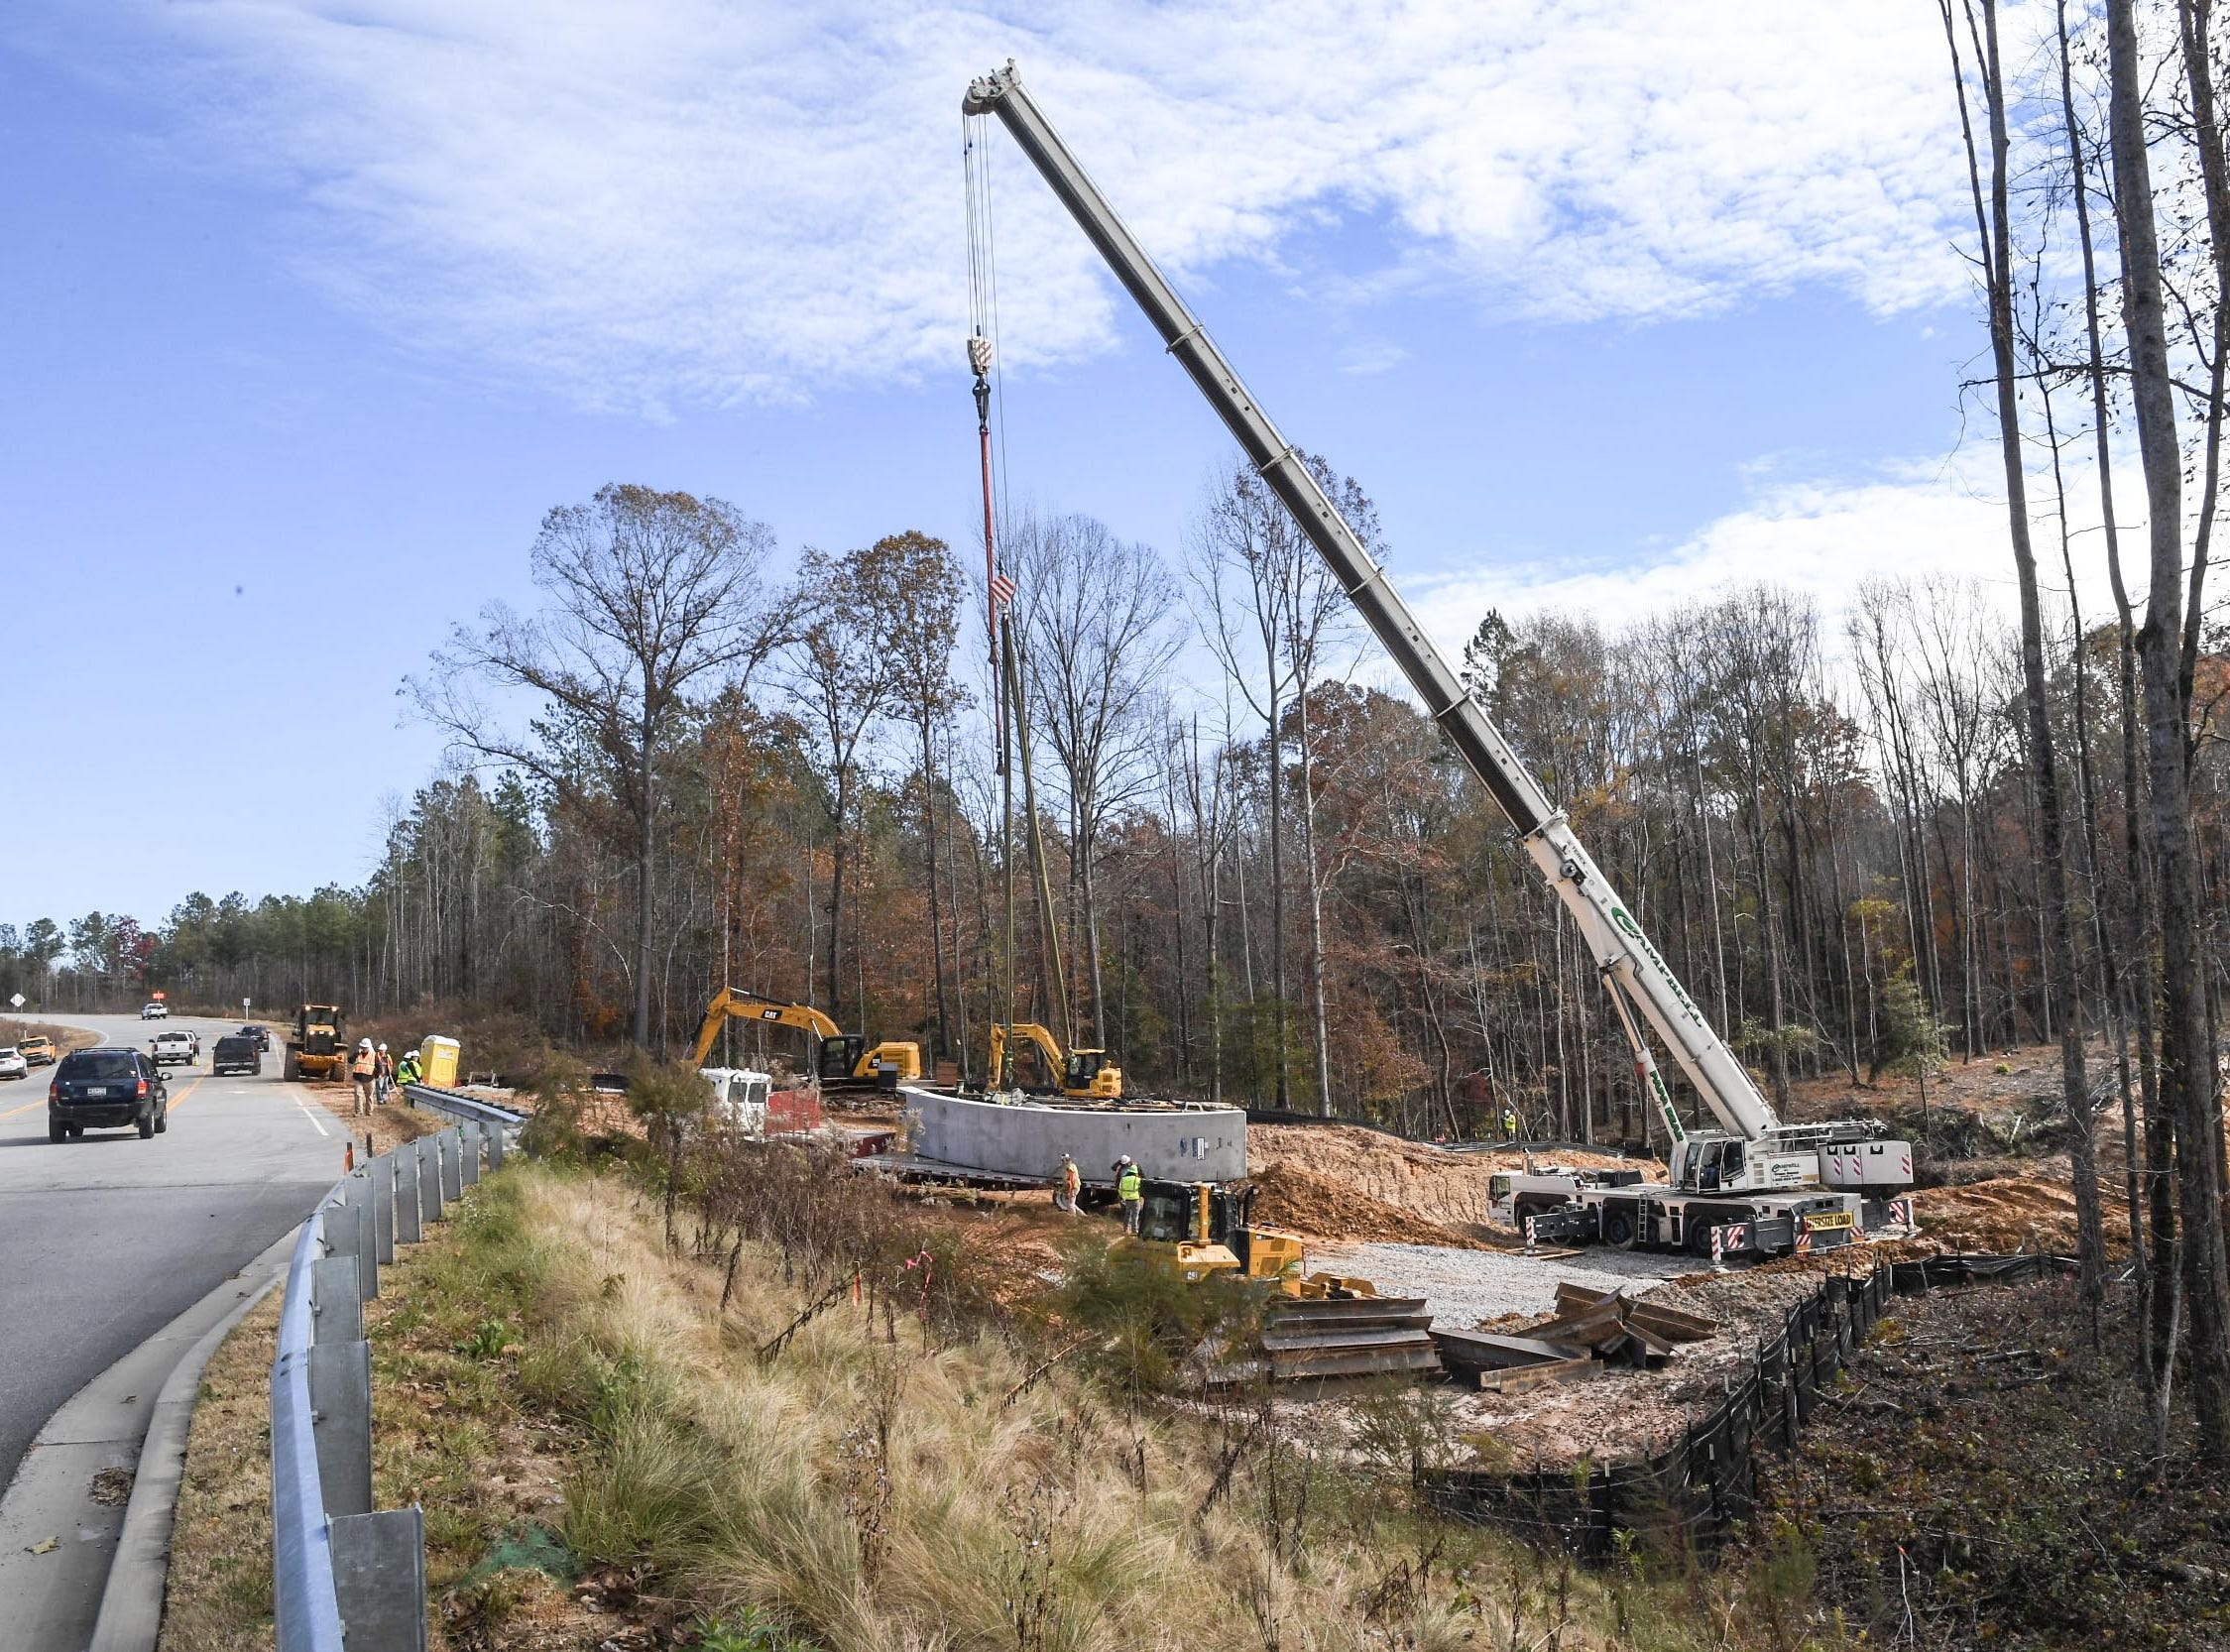 The TTi Innovation Center construction site is adding a bridge for a traffic route from the production center and the new facility near exit 27 on I-85. The Bebo style bridge, made with prefabricated pieces, is being installed with Campbell Crane Services by Morgan Corp. of Duncan, S.C. TTI's  $75 million innovation center that will bring 250 high-paying jobs to Anderson County. The research facility is a prelude to the addition of a 300,000-square-foot corporate headquarters/innovation center.